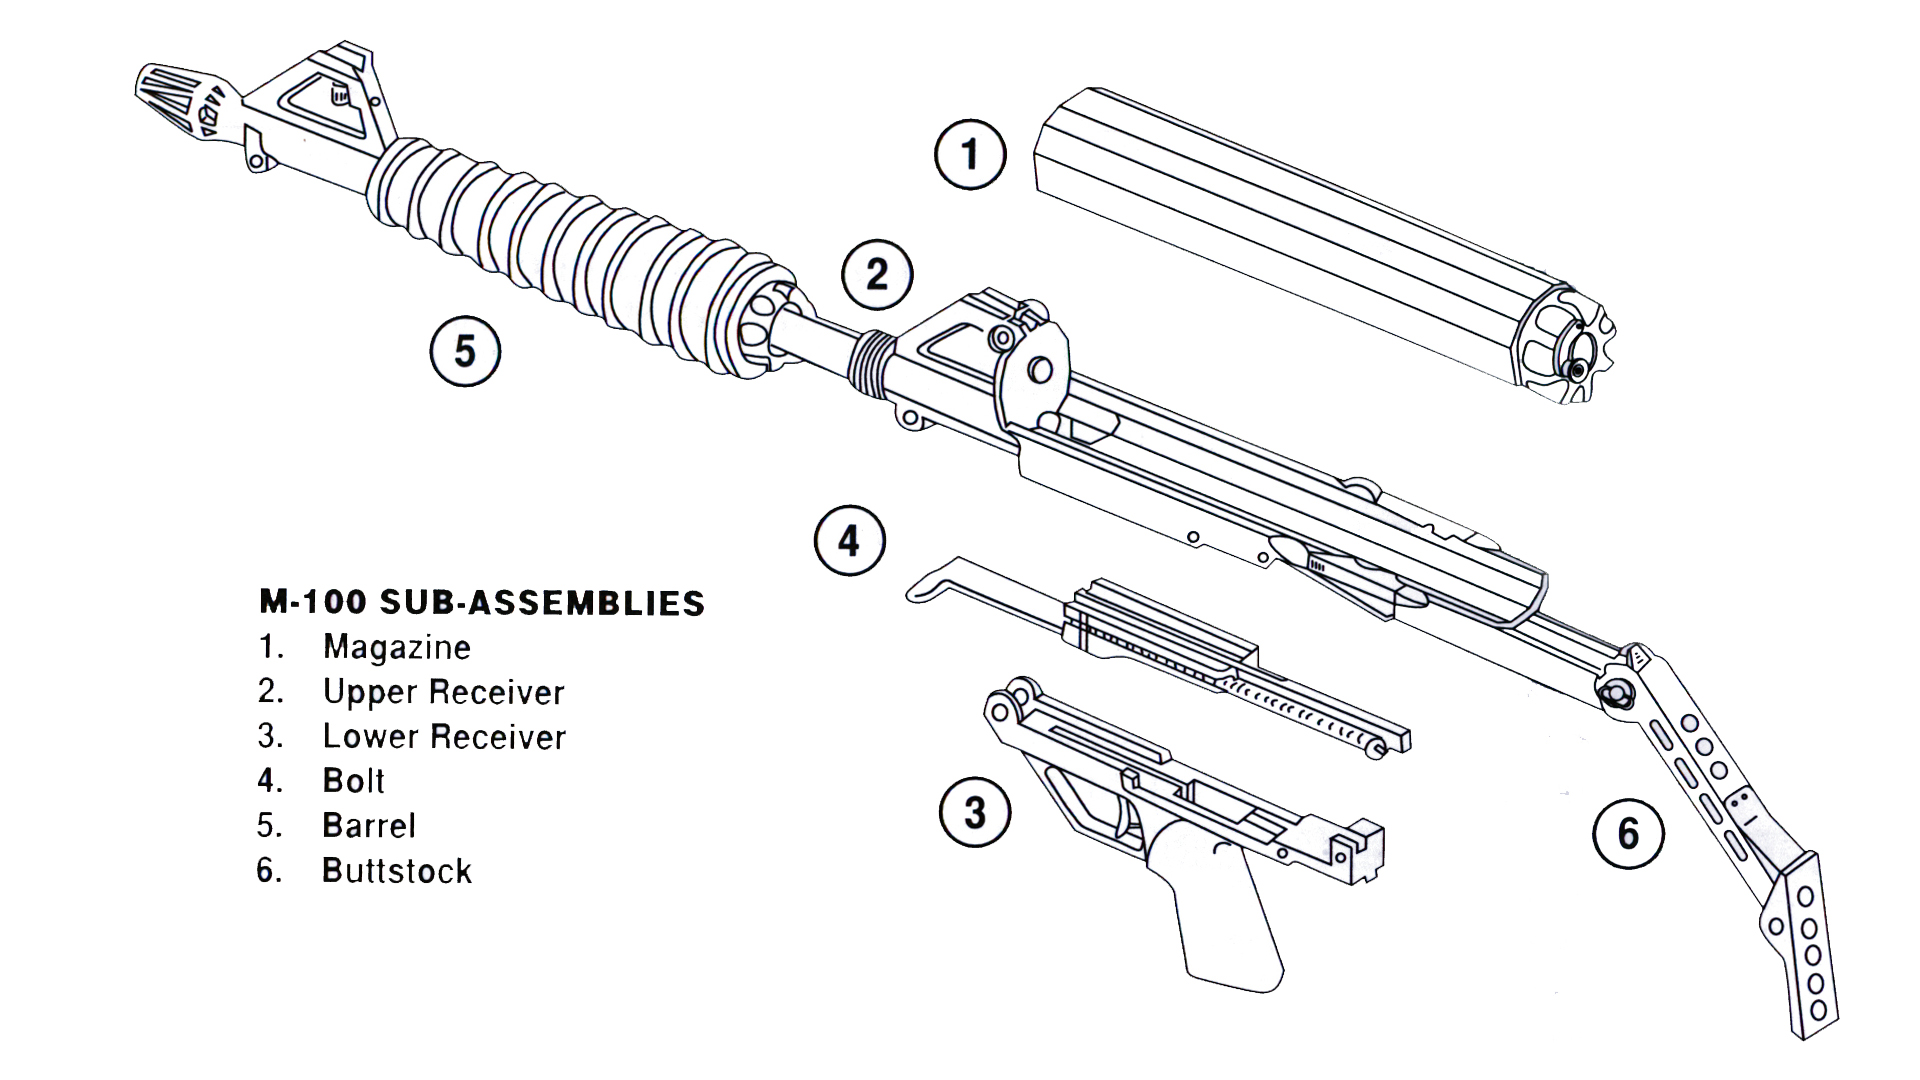 M100 Sub Assembly Breakdown